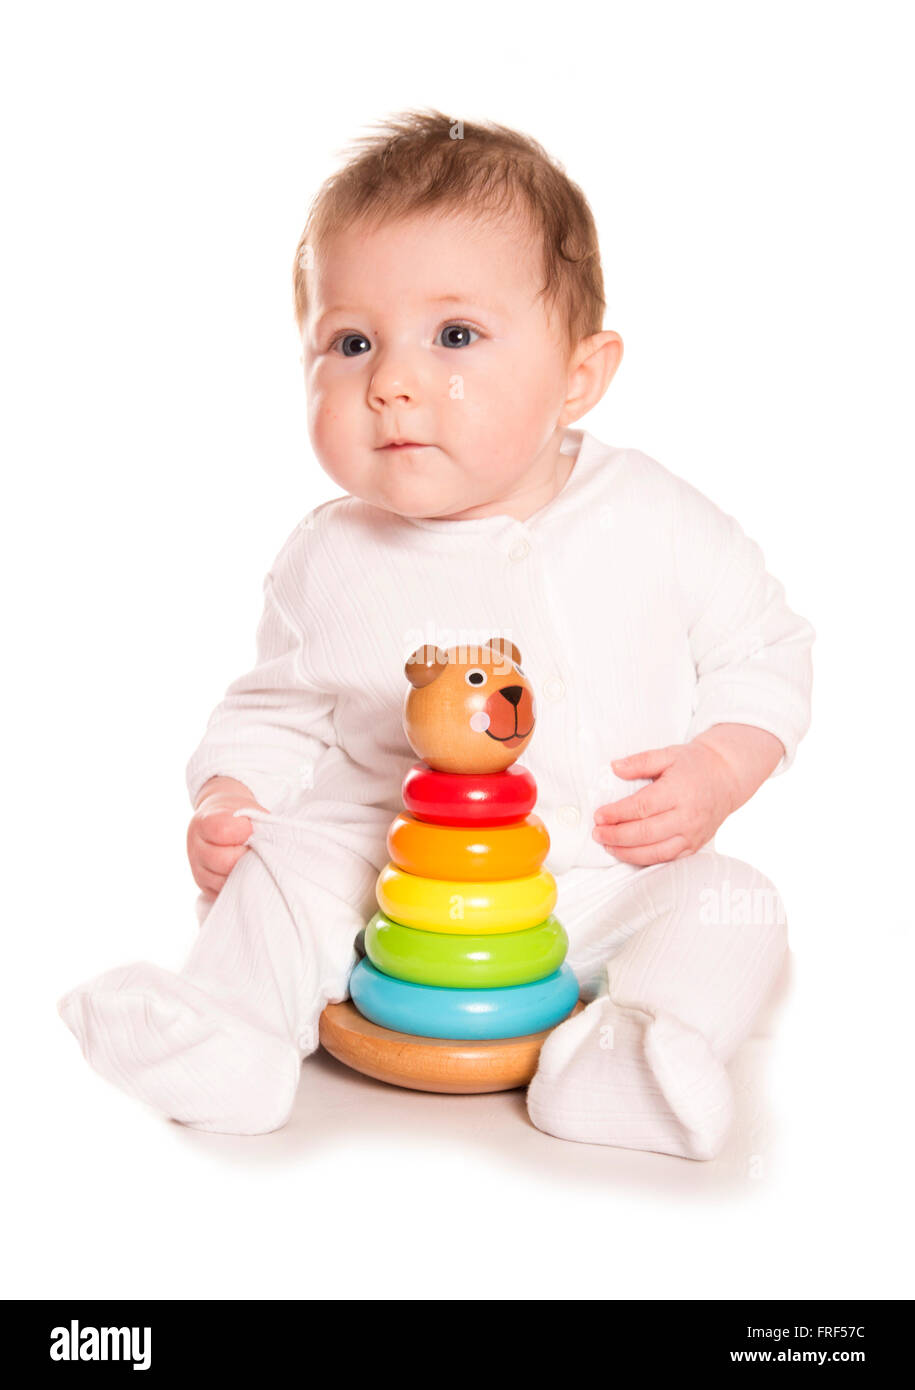 baby with wooden stacking toy white background - Stock Image